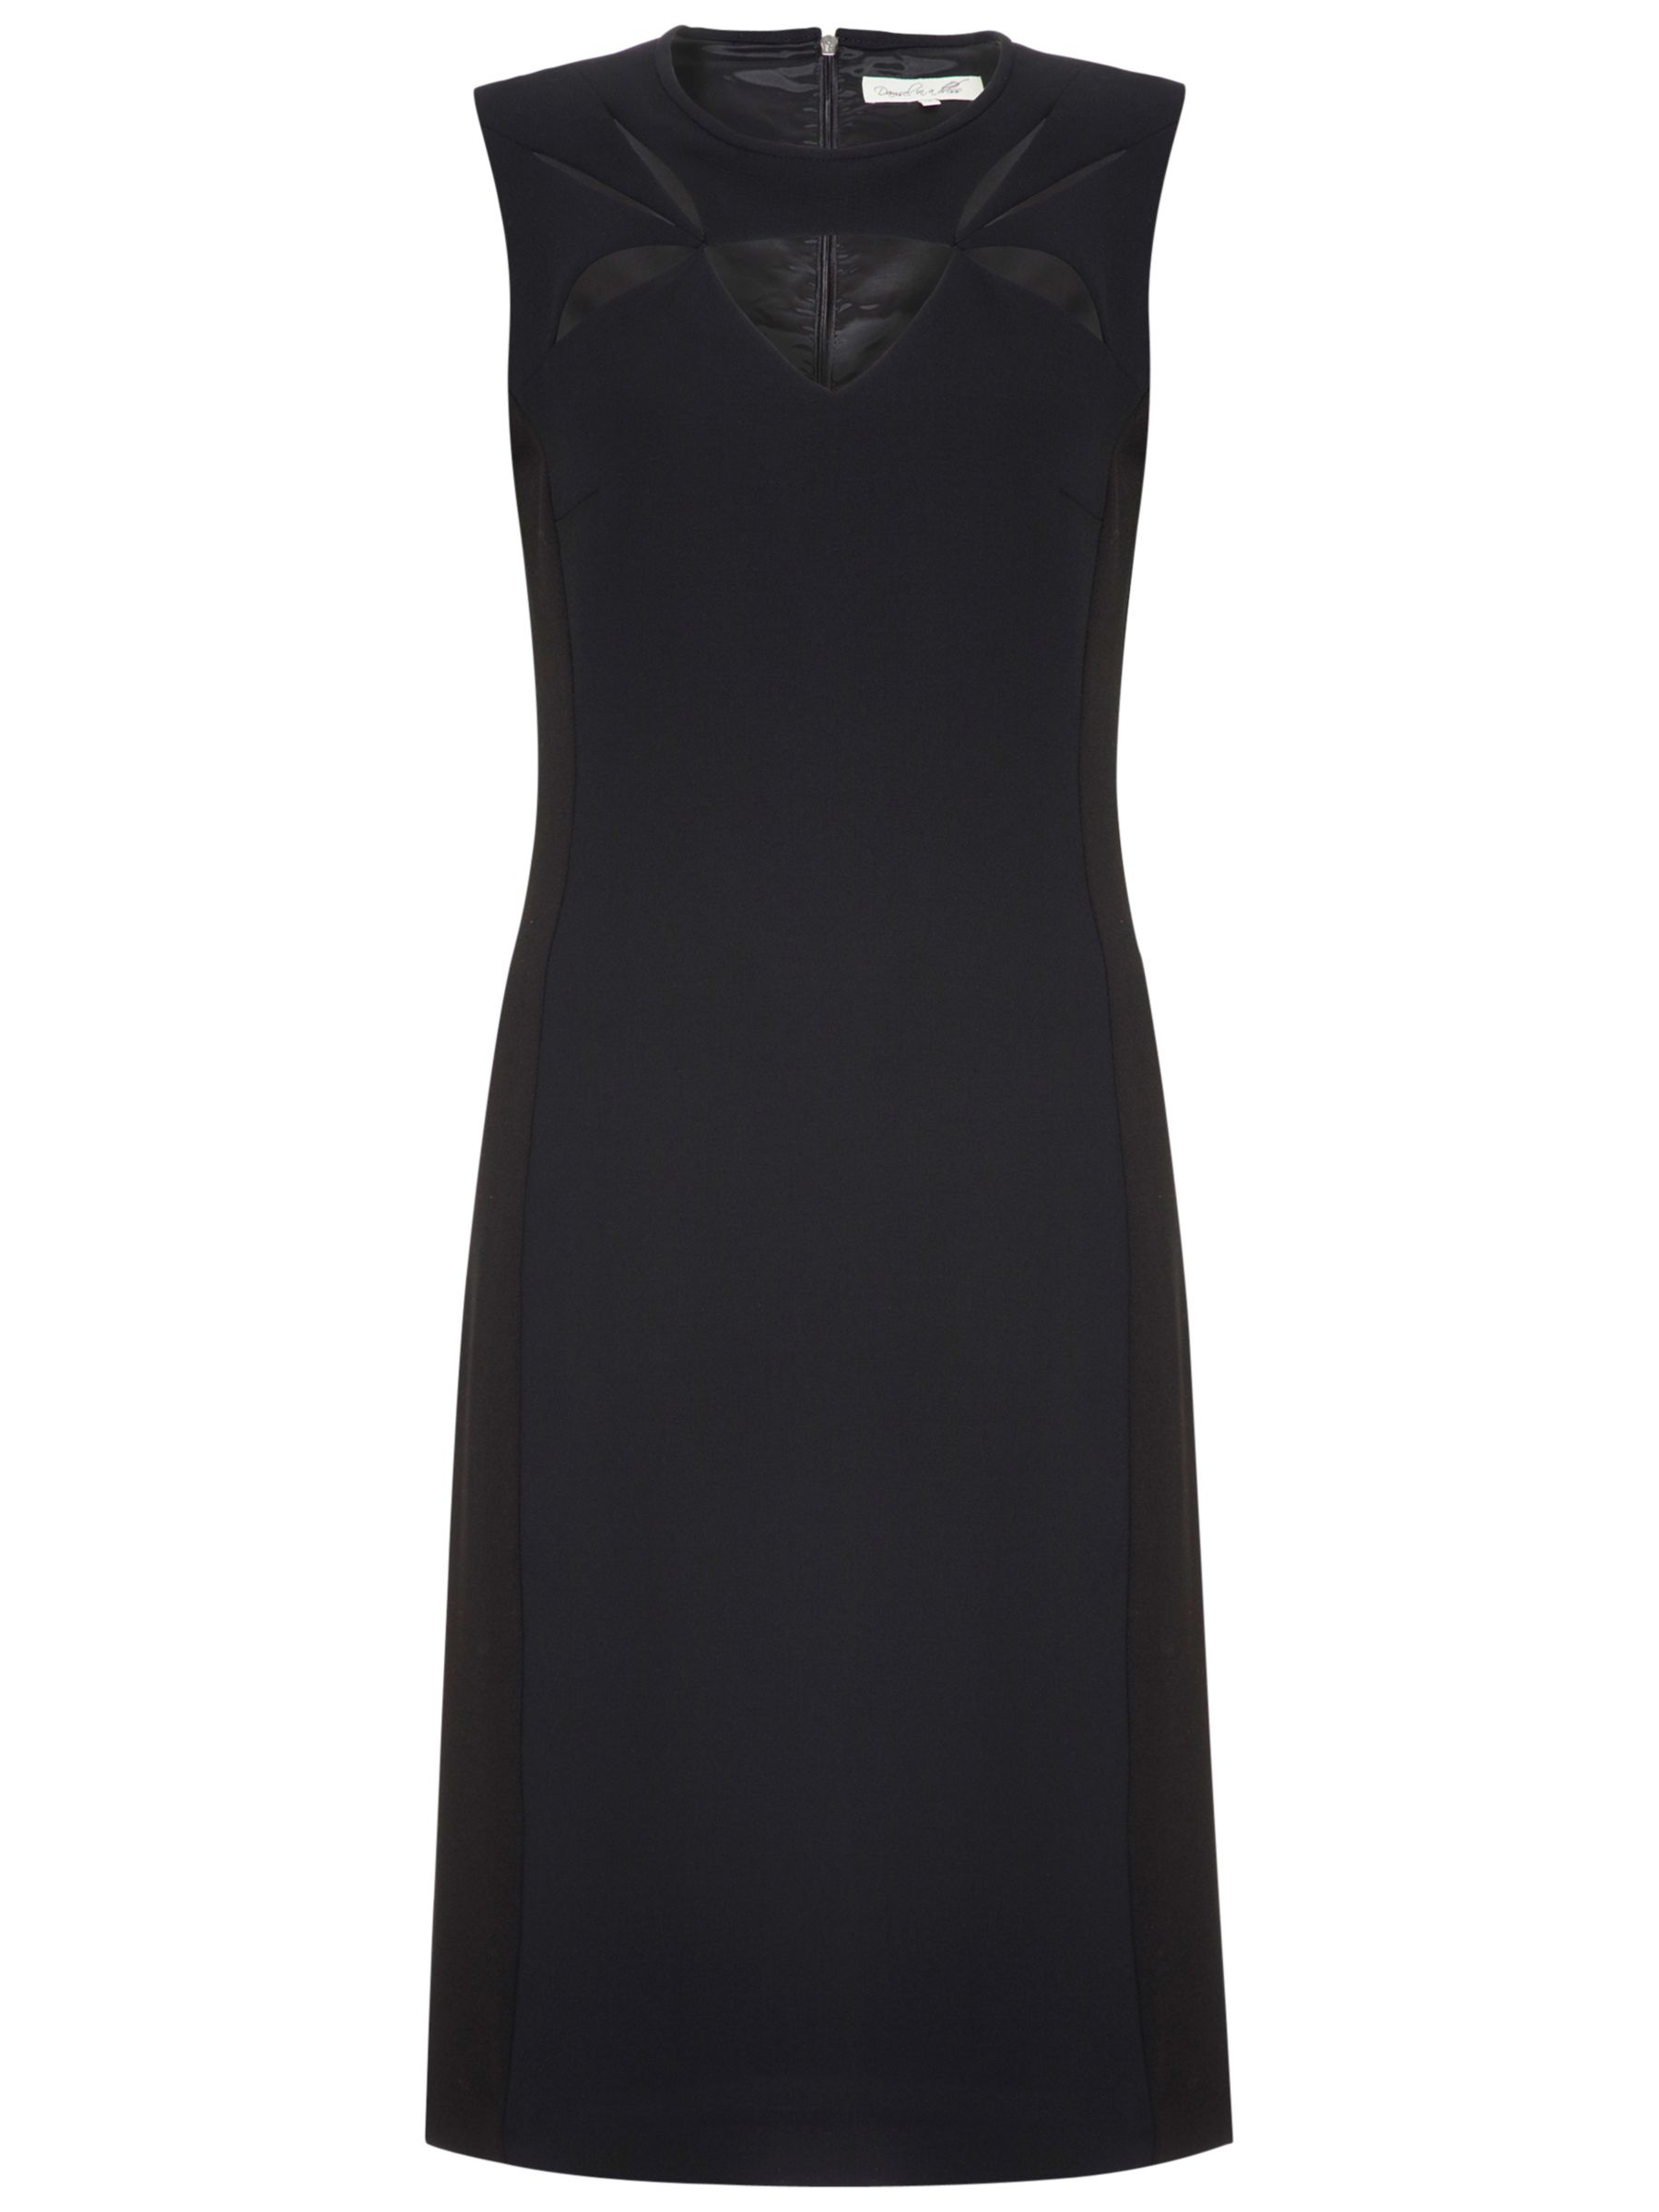 damsel in a dress langley hall dress black, damsel, dress, langley, hall, black, damsel in a dress, 12|16|14, clearance, womenswear offers, womens dresses offers, women, inactive womenswear, new reductions, womens dresses, special offers, up to 30% off selected damsel in a dress, edition magazine, little black dress, 1691658